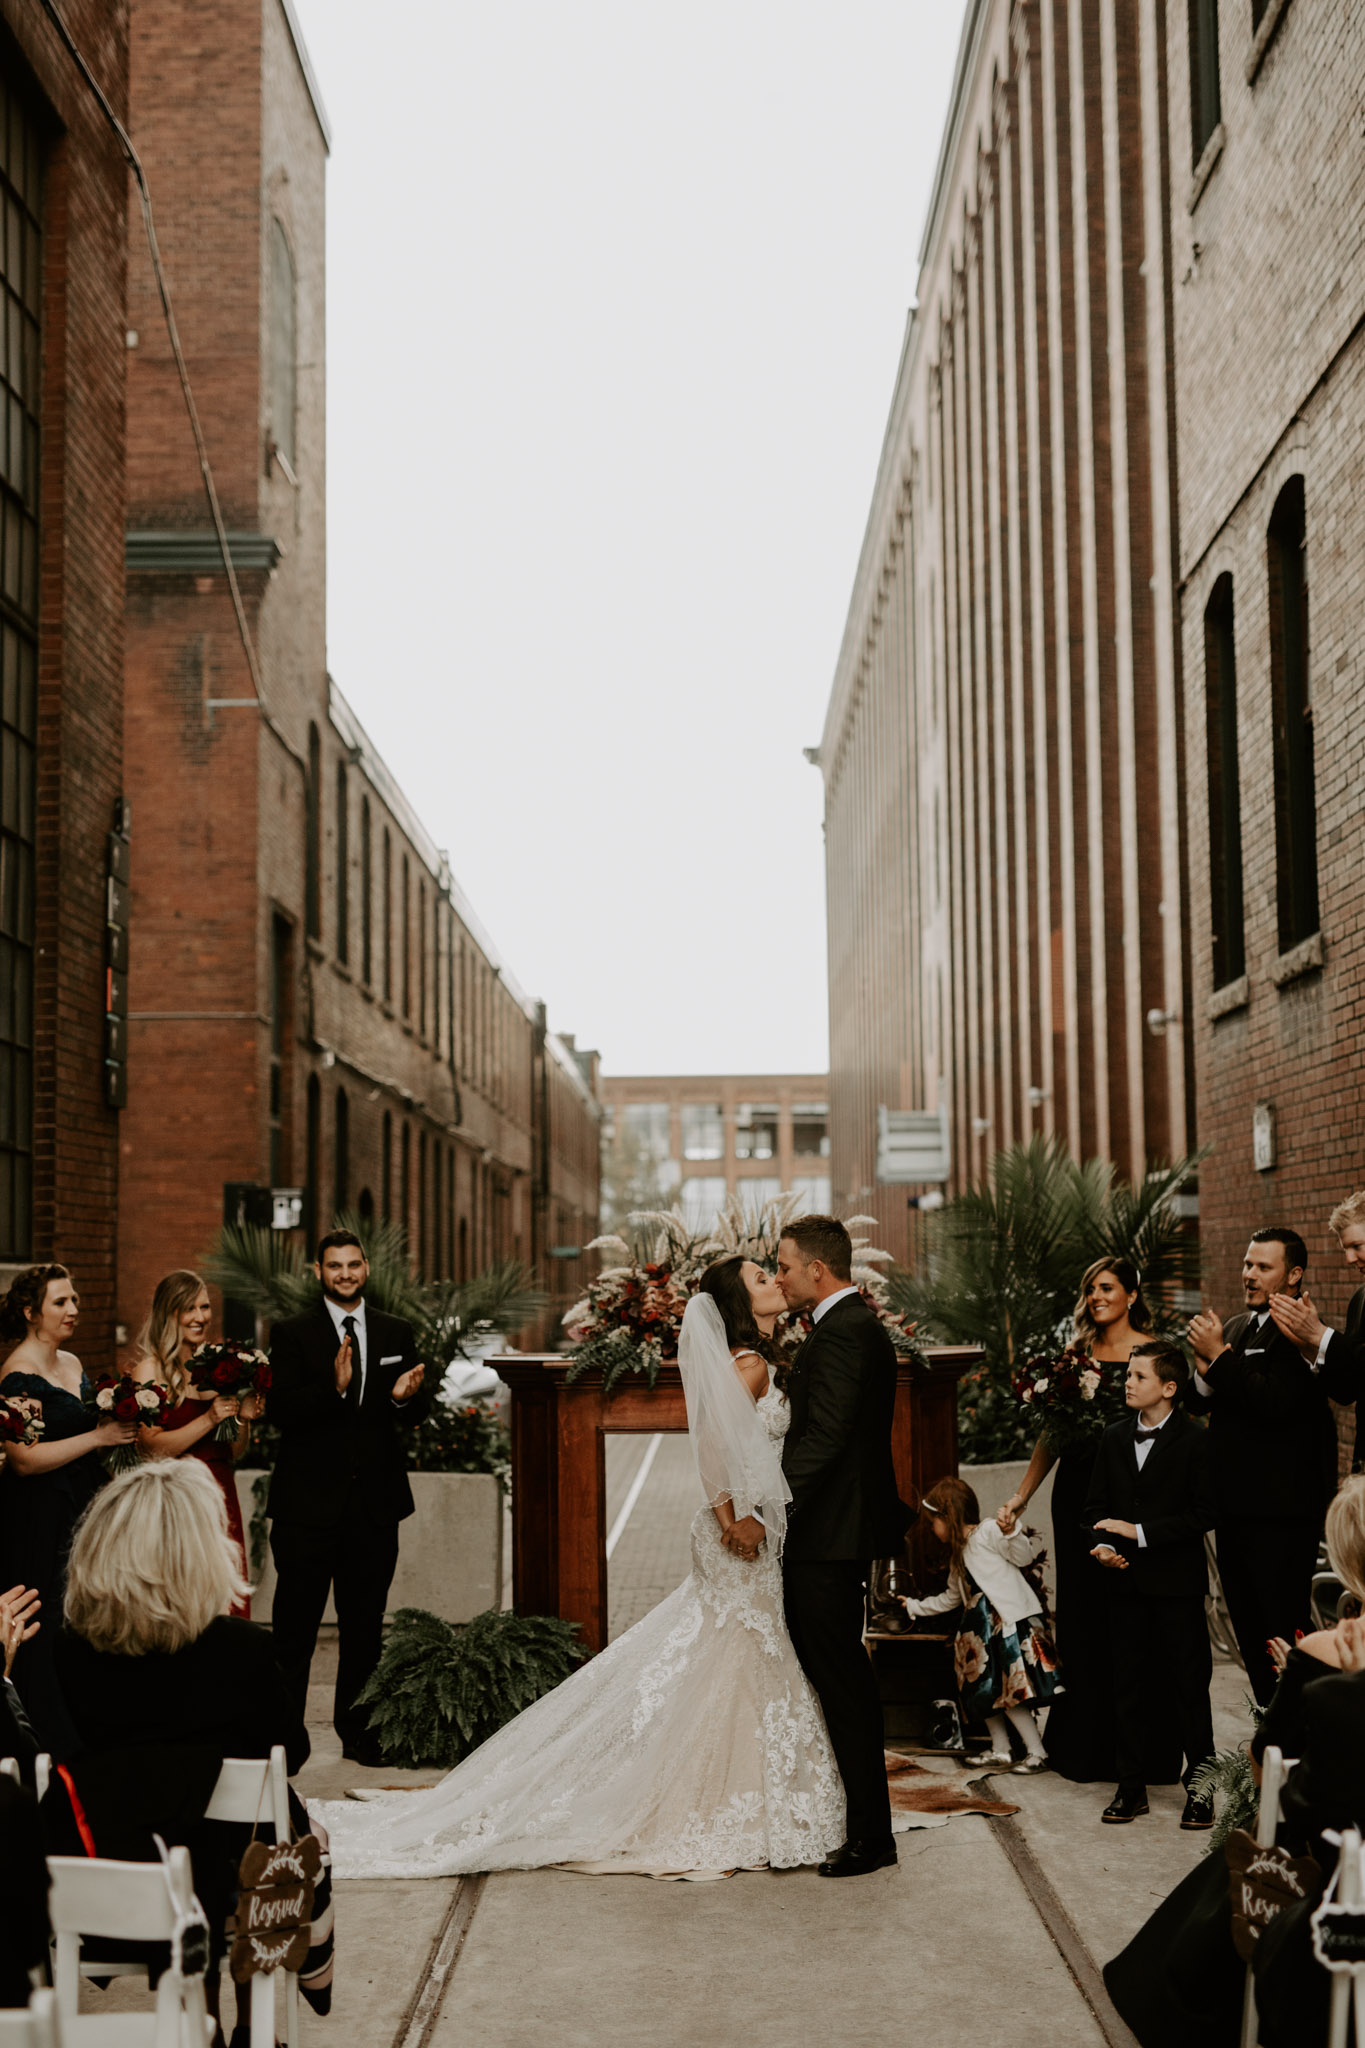 Liberty Village Wedding Caffino - Newlyweds kiss at the alter outside